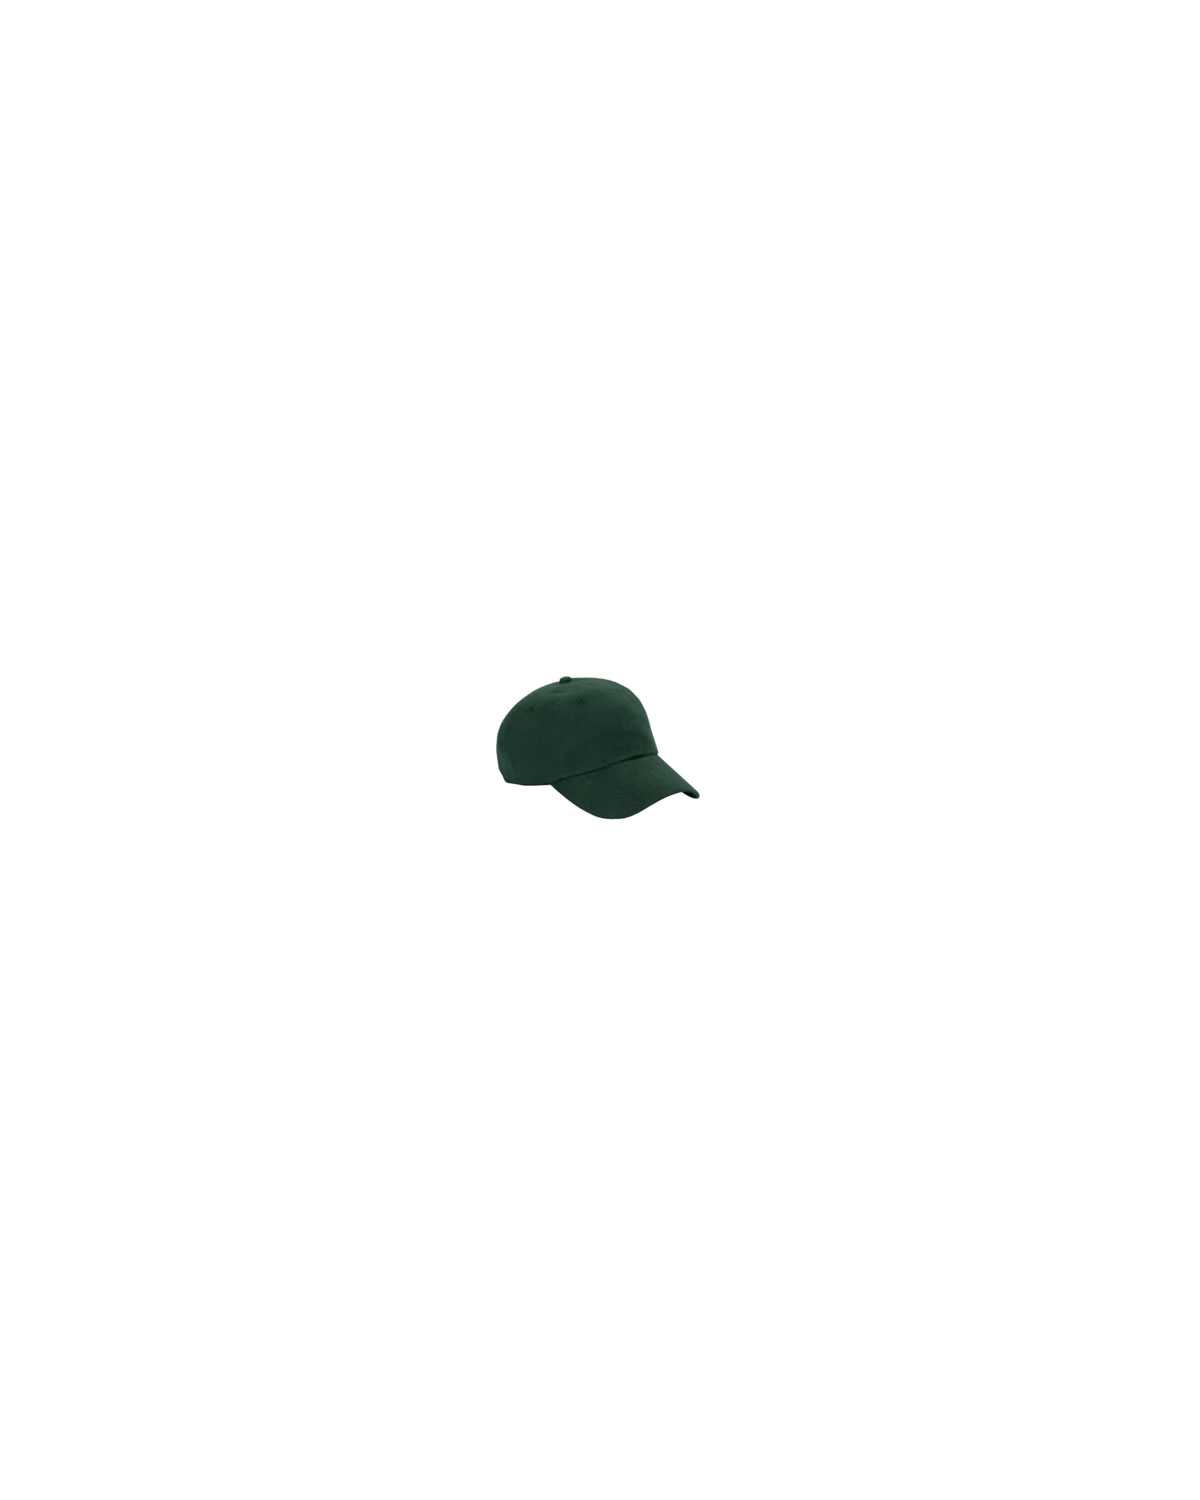 4dd20efa484a64 Head Wear>Caps>Big Accessories BX005 6-Panel Washed Twill Low-Profile Cap.  bx005_54_ View larger. Previous. bx005_51_ ...